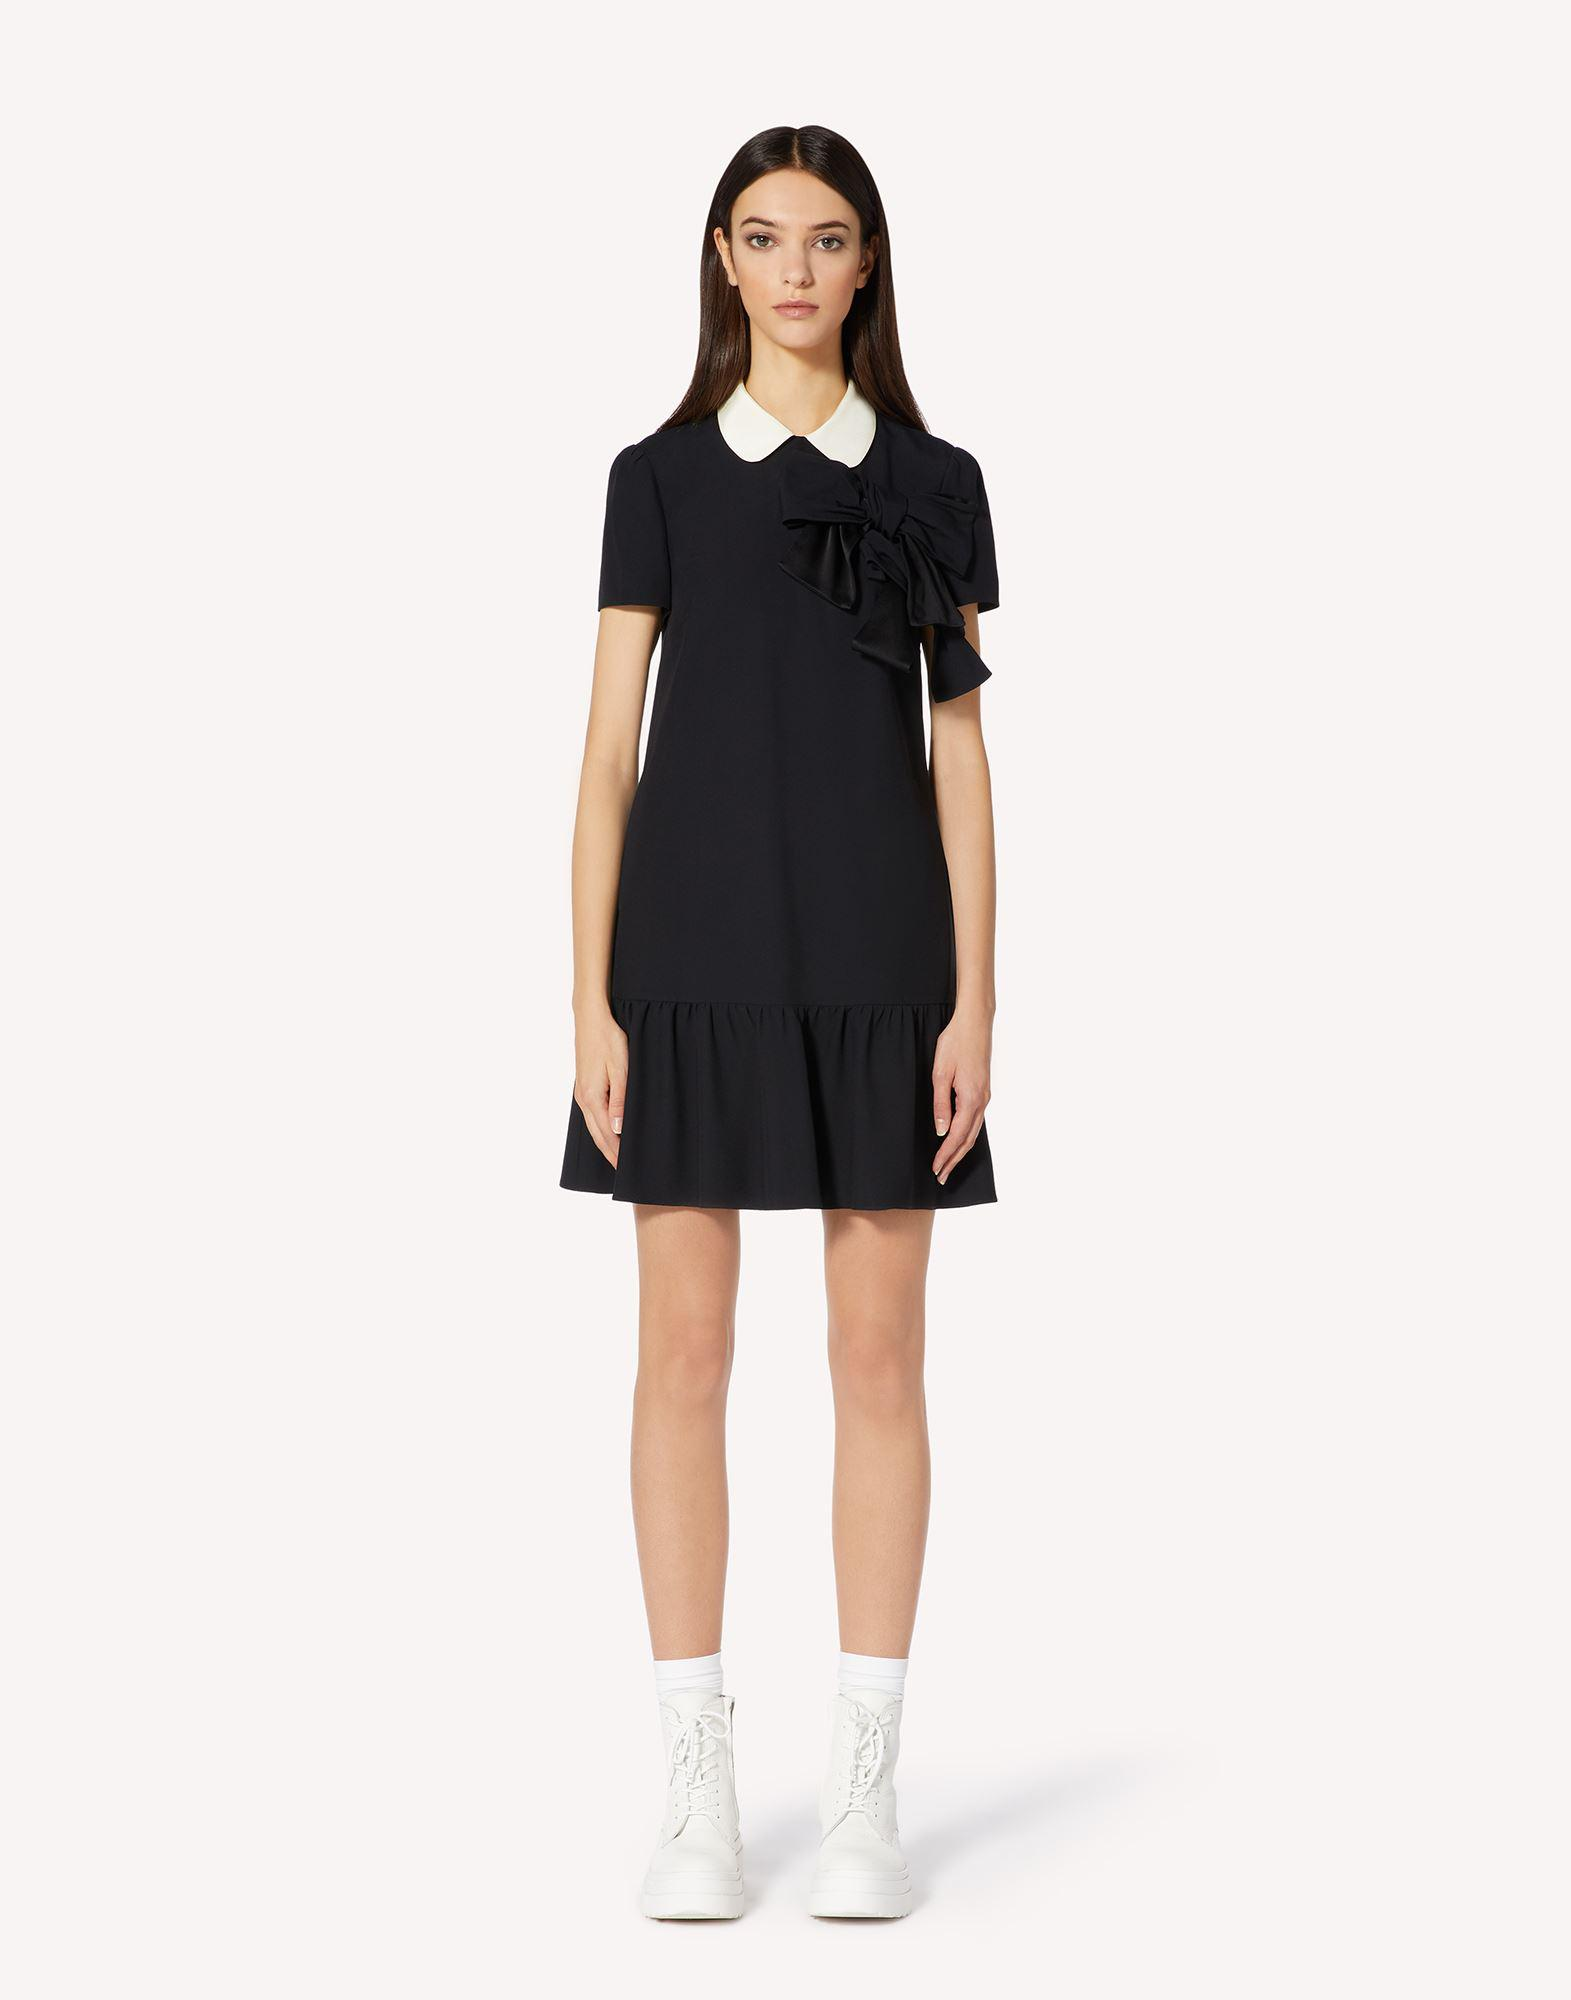 CREPE ENVERS SATIN DRESS WITH COLLAR DETAIL AND BOWS